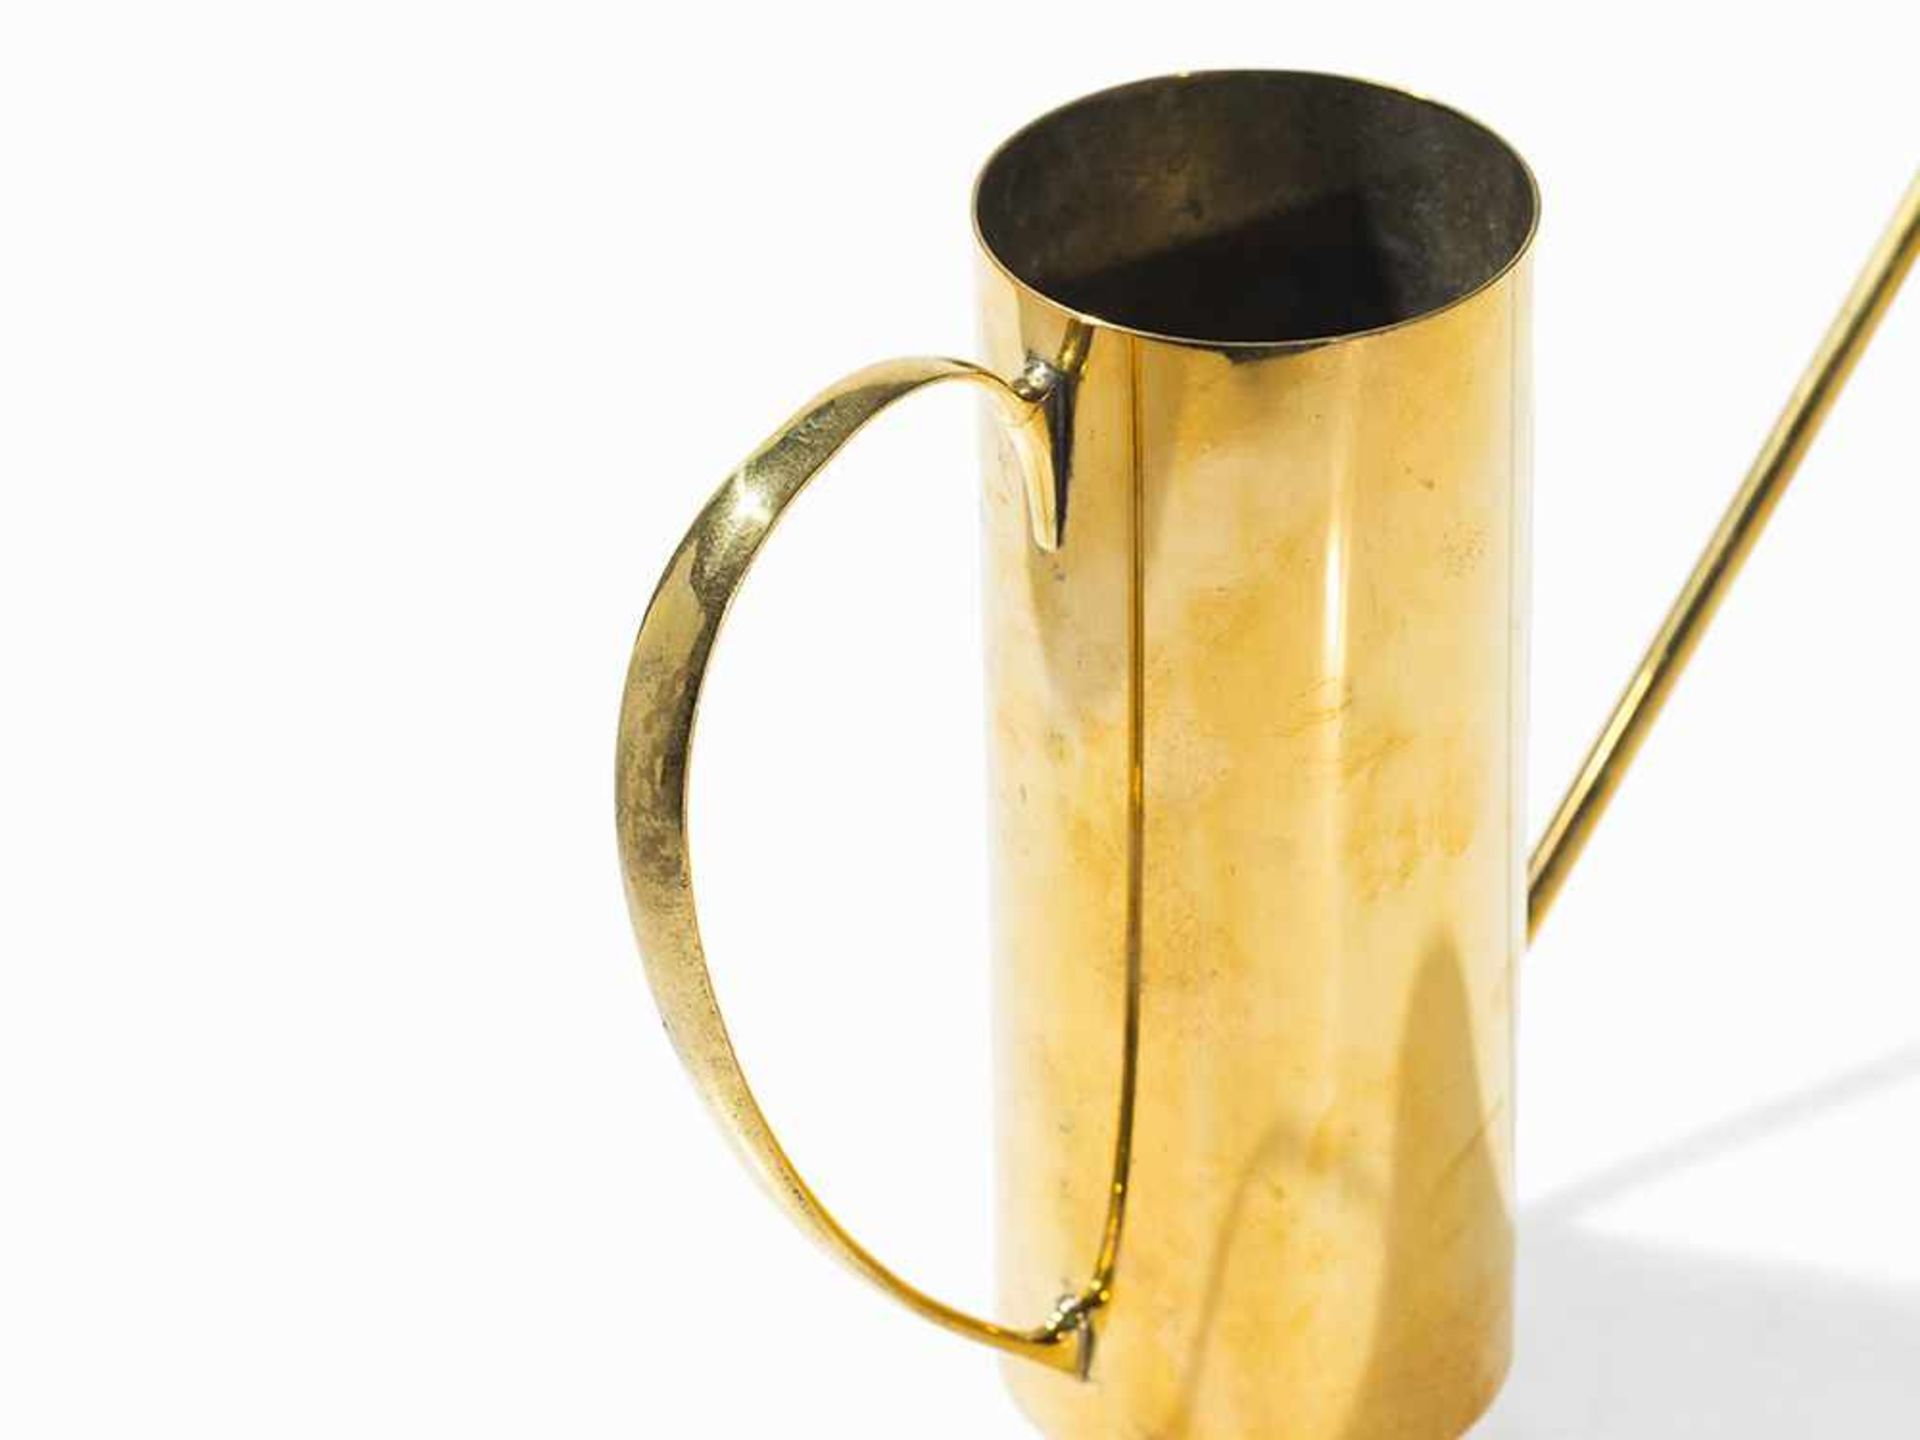 Los 113 - Karl Hagenauer, Watering Can, Austria, 1950s Copper, brass. Vienna, Austria, 1950s. Design: Karl